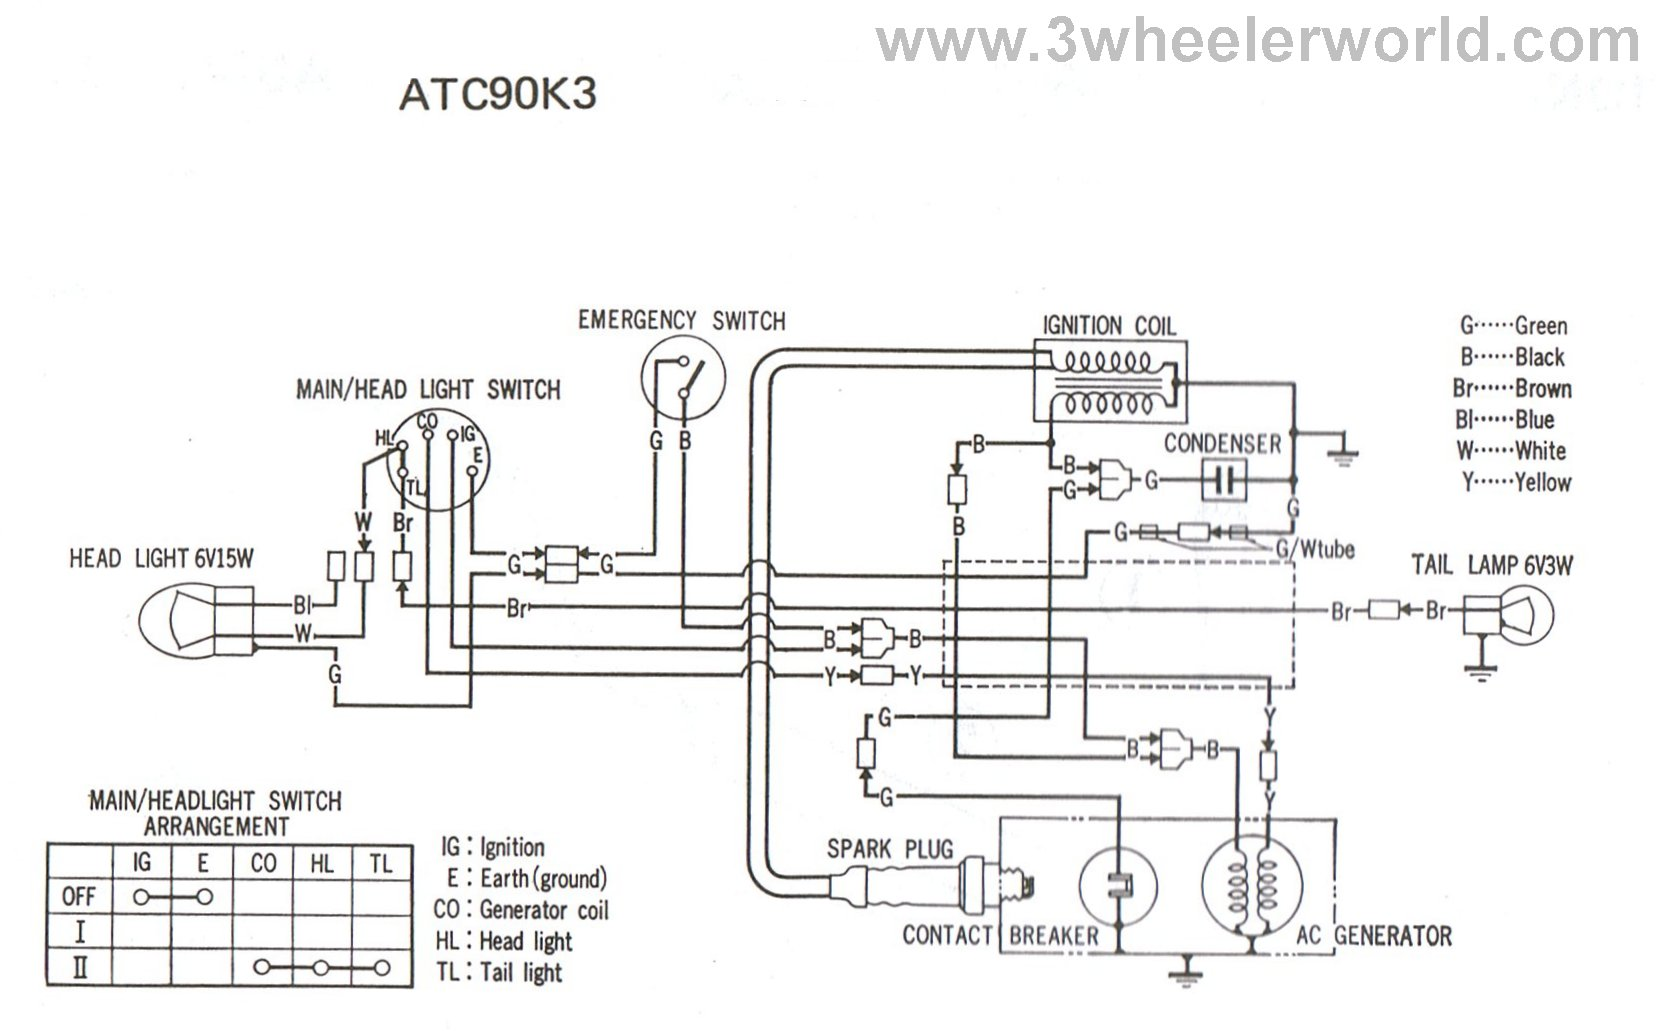 ATC90K3HM wiring diagram polaris xplorer 300 the wiring diagram 2003 polaris predator 90 wiring diagram at n-0.co